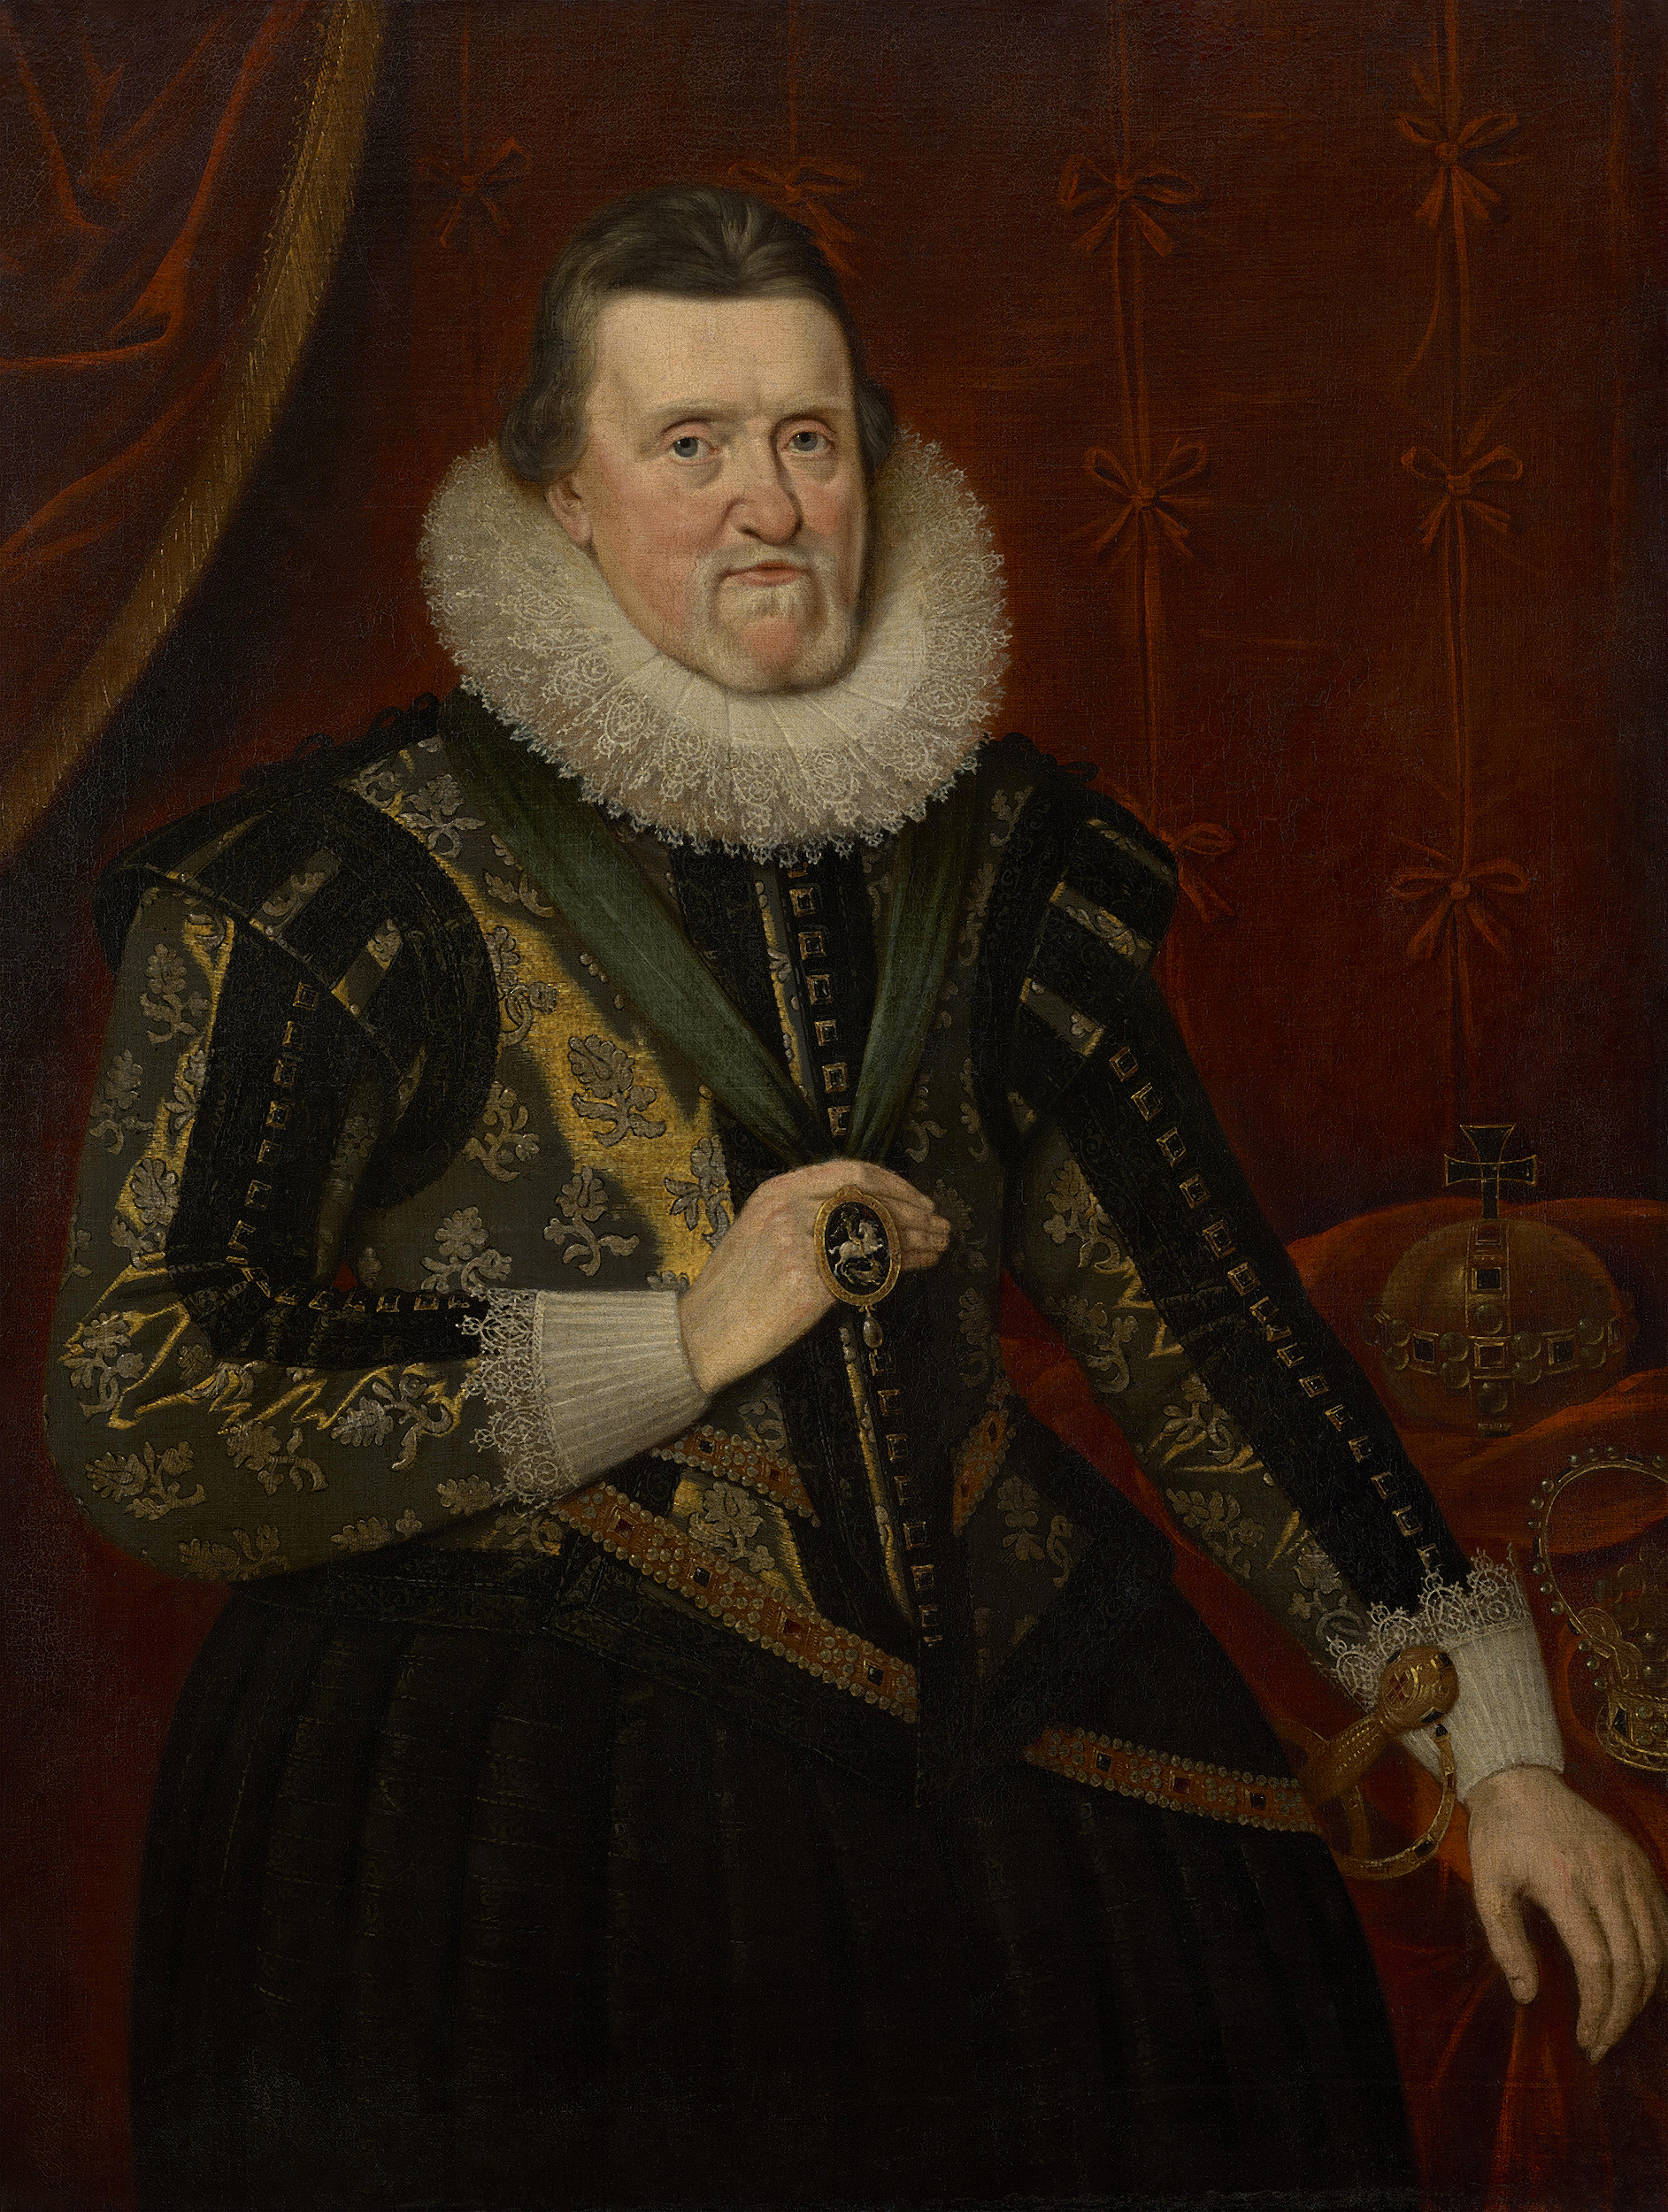 Portrait of James VI and I (1566-1625), King of Scotland (1567-1625), Regency (1567-1580), King of England and Ireland (1603-1625), 1624 | Portraits of Kings